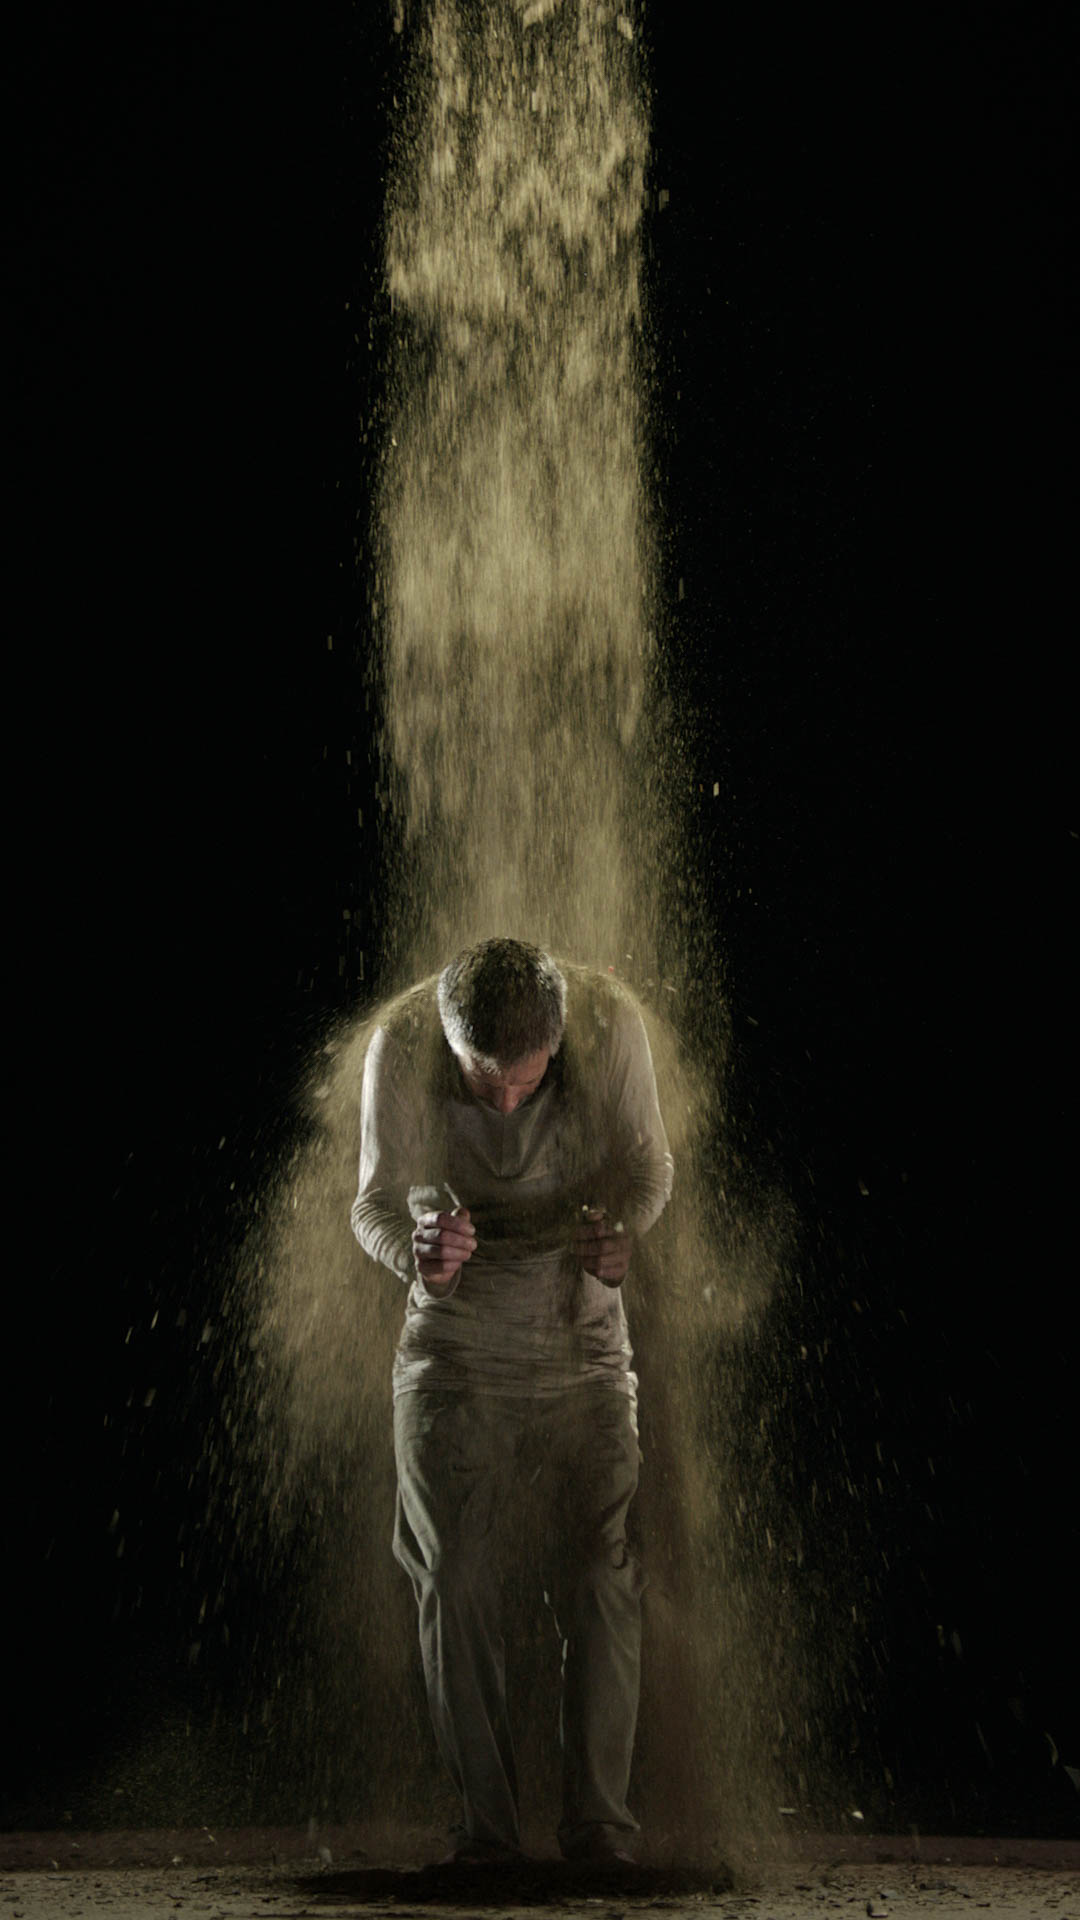 Bill Viola, Earth Martyr , 2014, Color High-Definition video on flat panel display, 42 3/8 x 24 1/2 x 2 5/8 in. (107.6 x 62.1 x 6.8 cm), 7:10 minutes, Executive producer: Kira Perov, Performer: Norman Scott